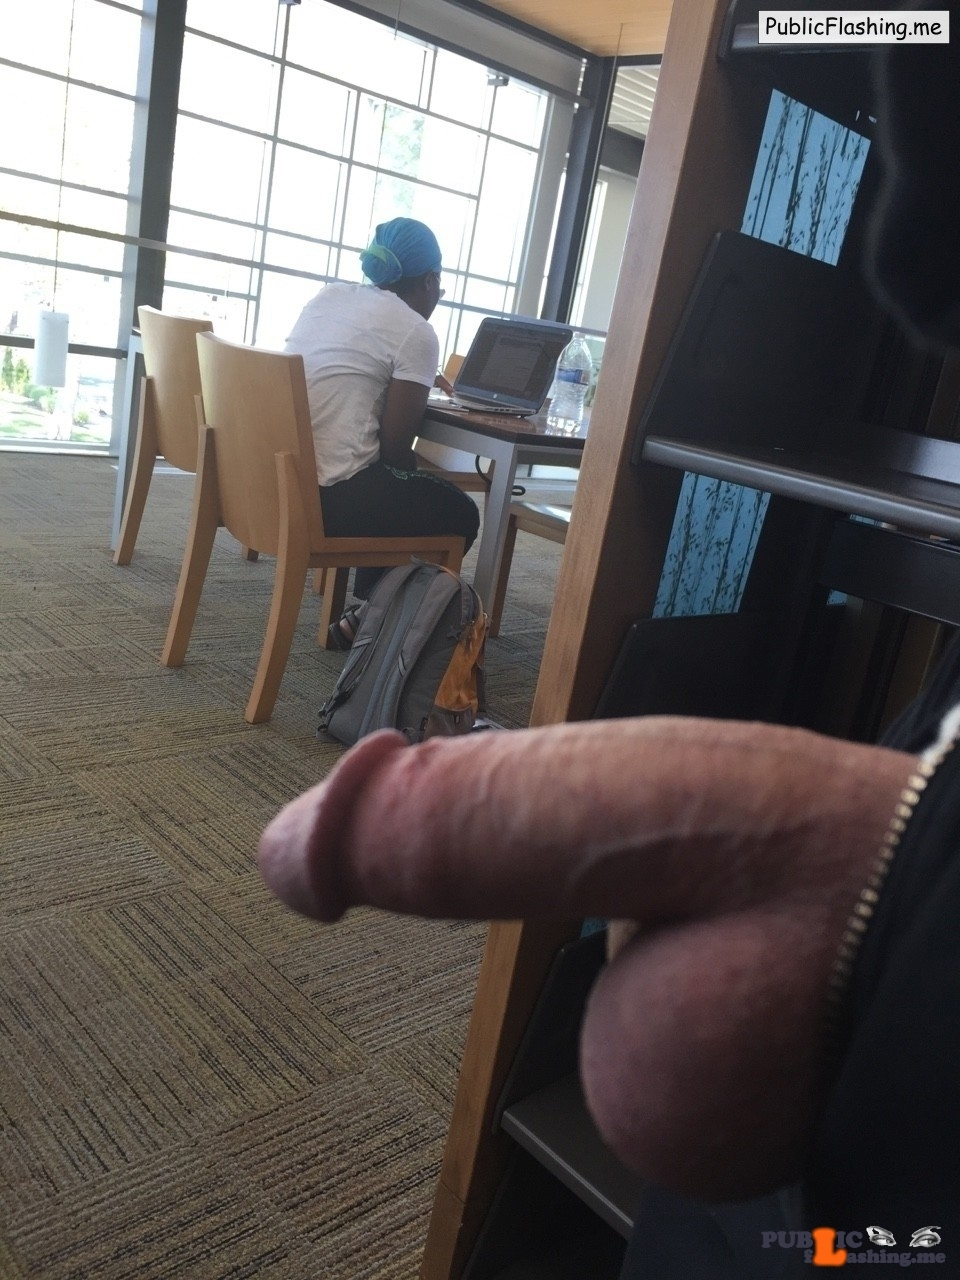 dick flash porn